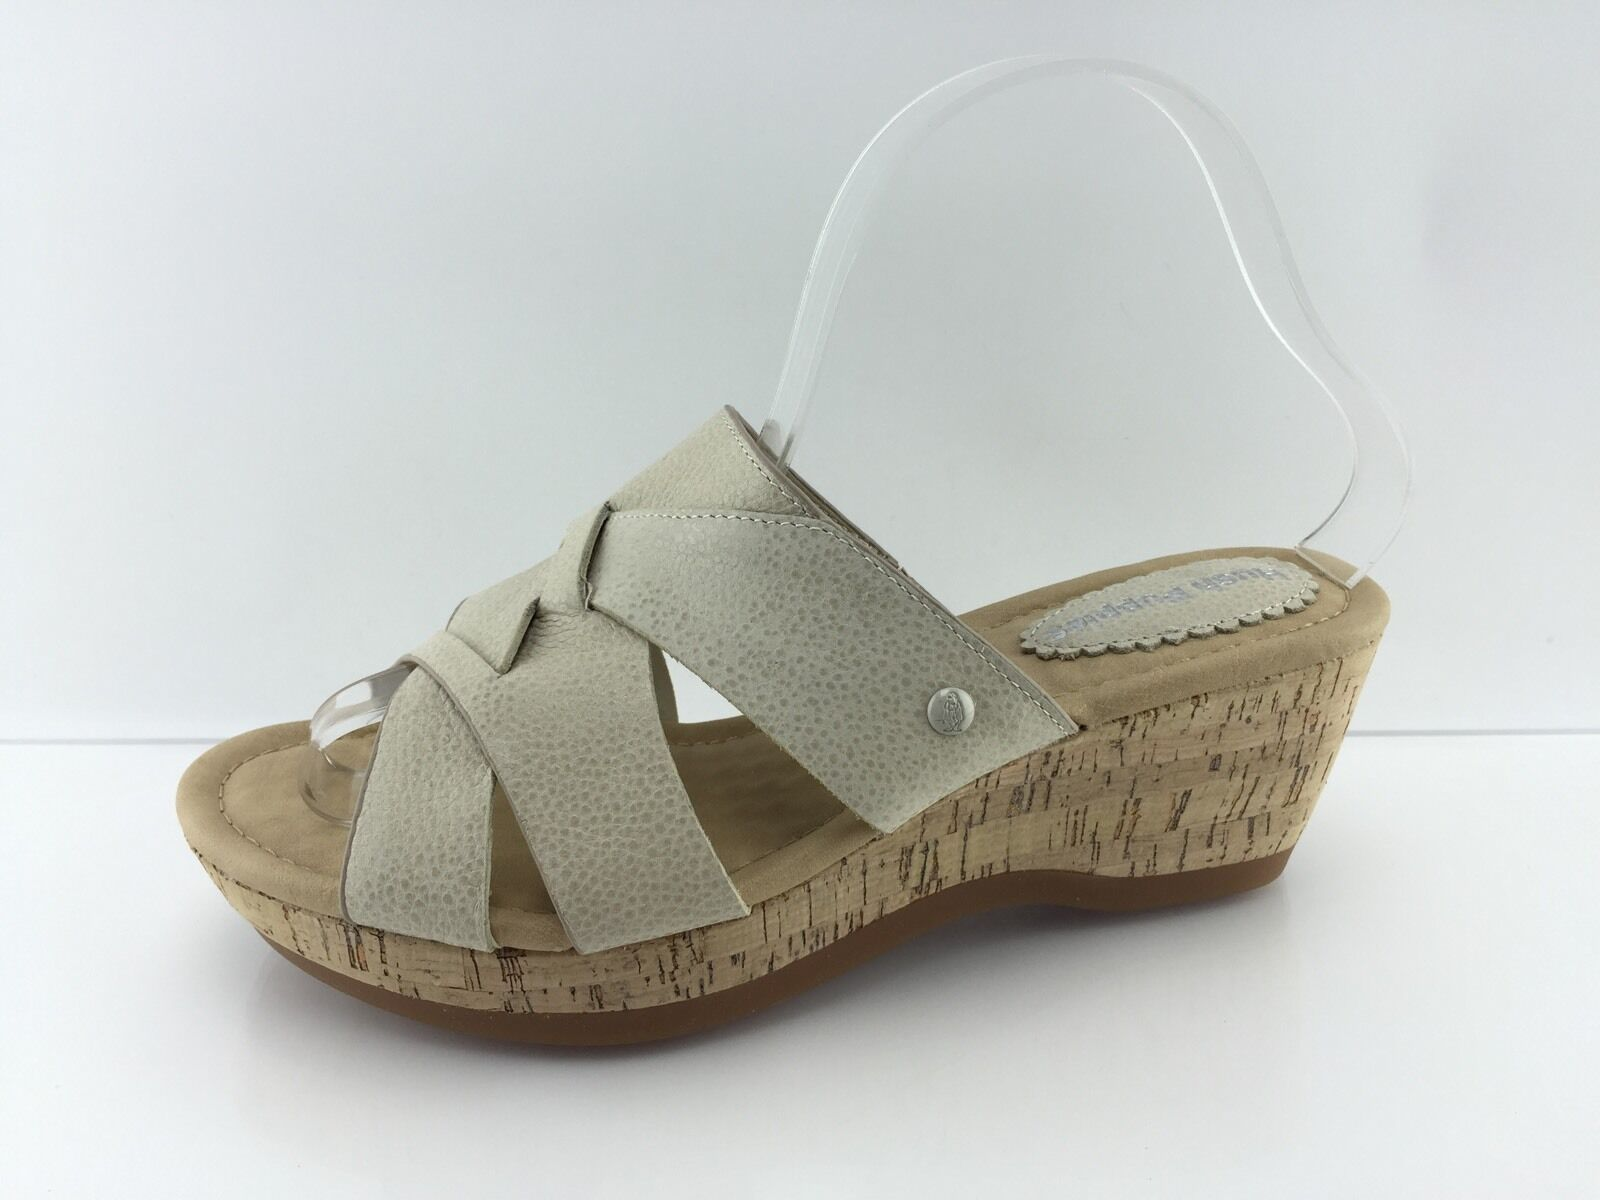 Hush Puppies Women's Ivory Leather Sandals 8.5 W